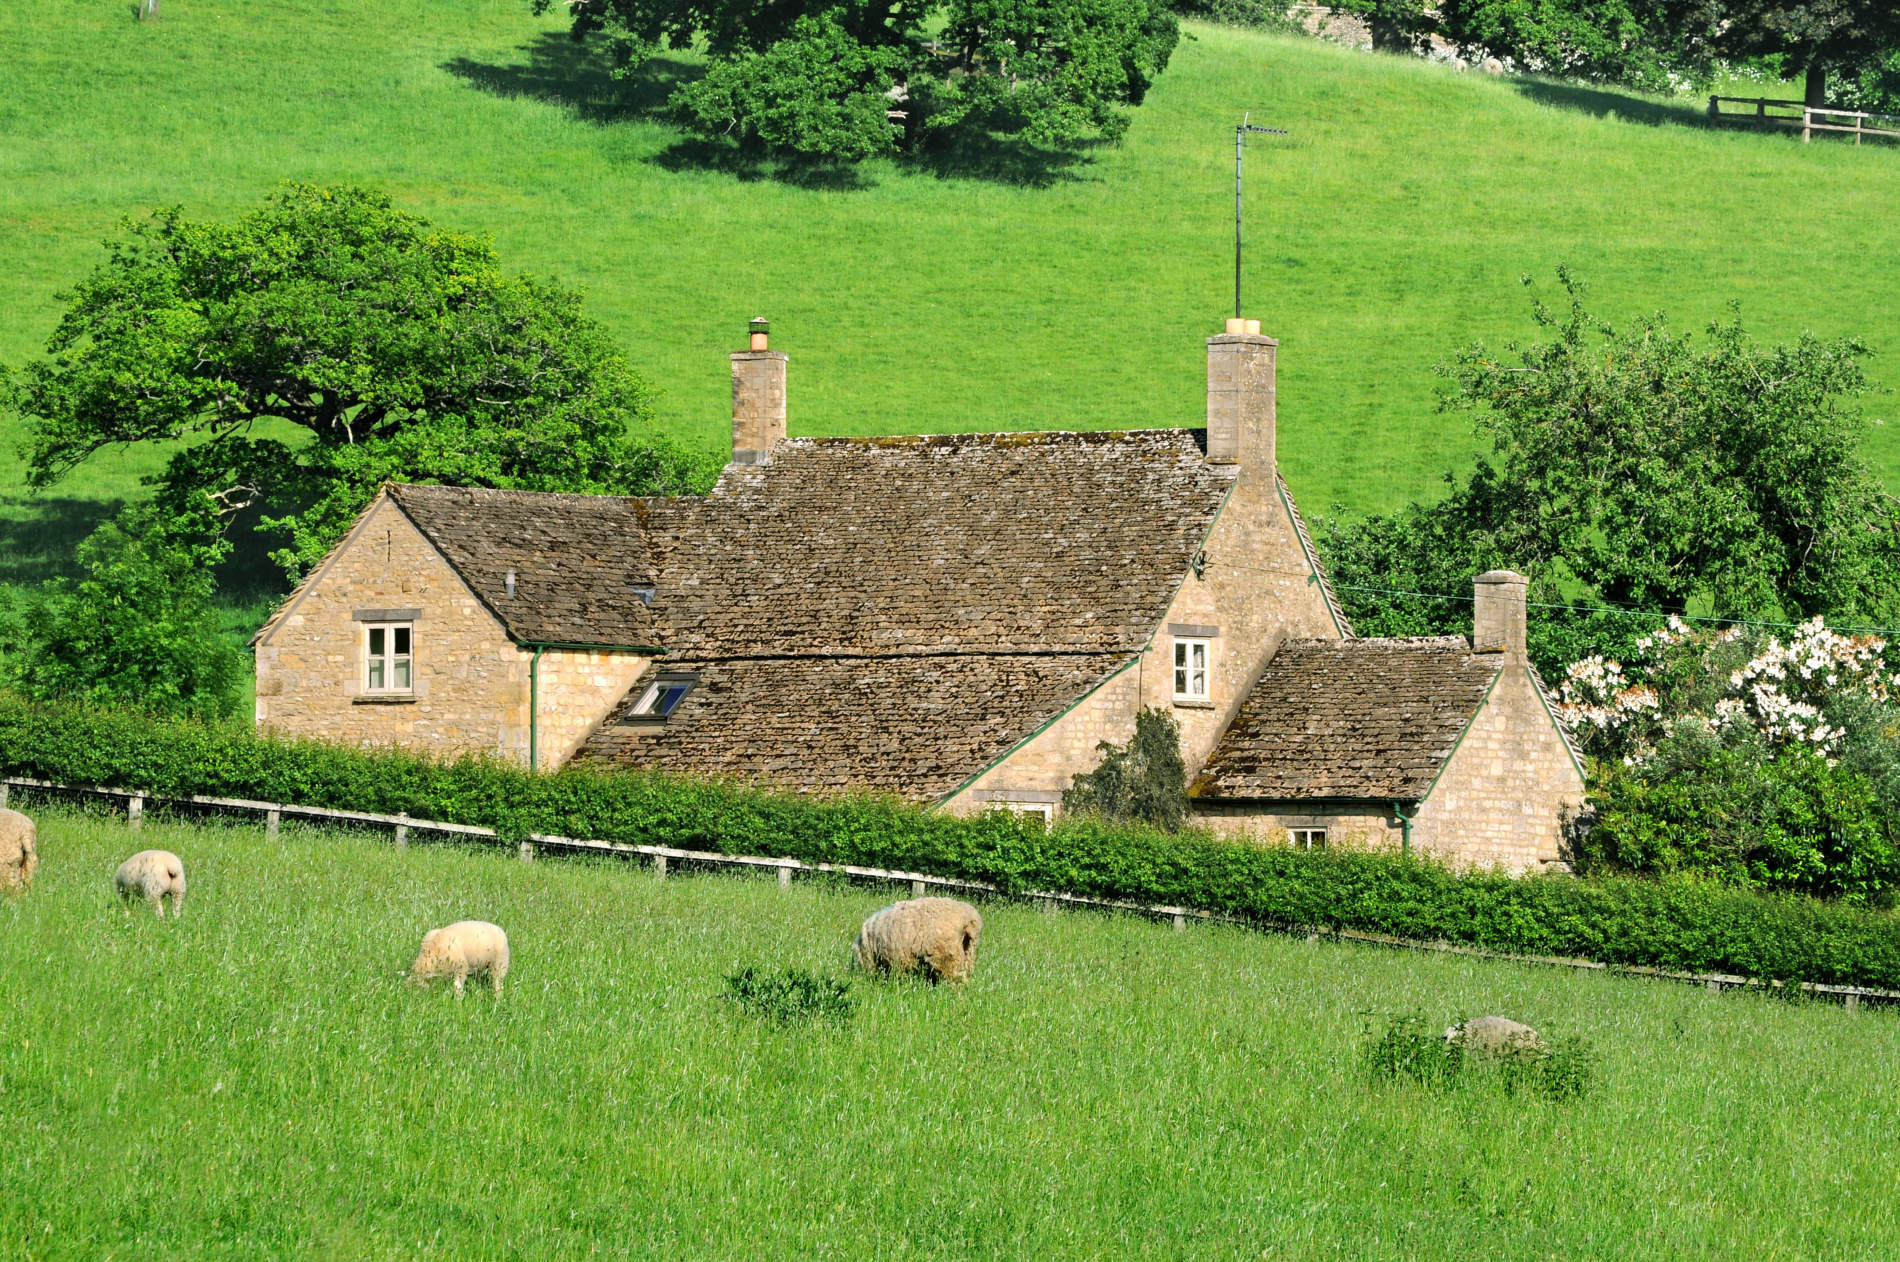 Farmhouse in English countryside of Cotswolds